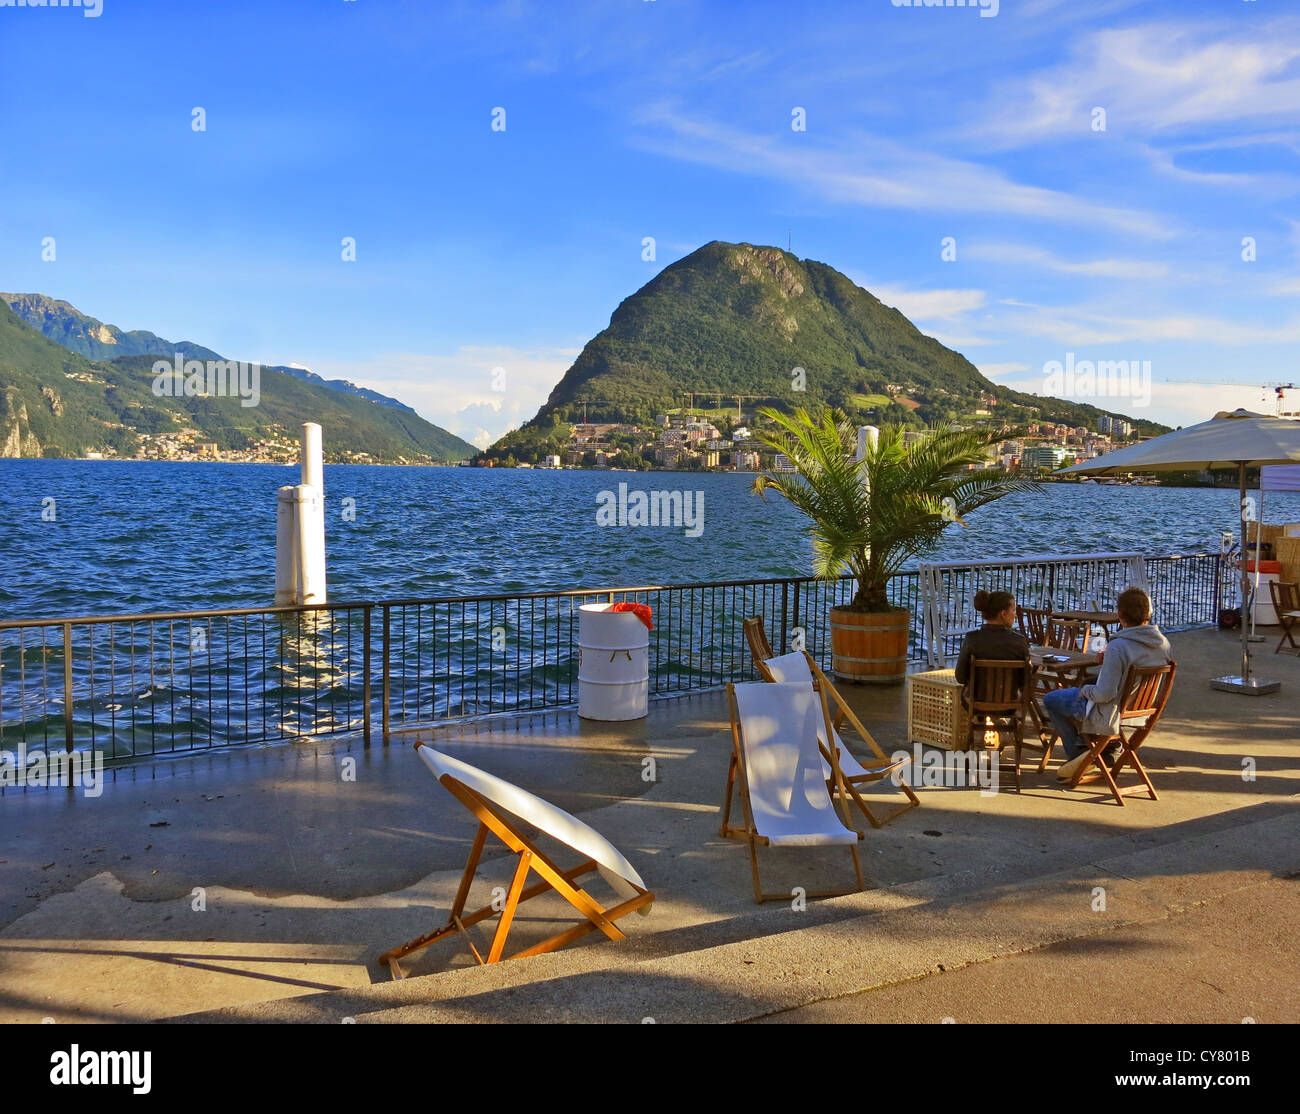 lake lugano italian stock photos lake lugano italian stock images alamy. Black Bedroom Furniture Sets. Home Design Ideas